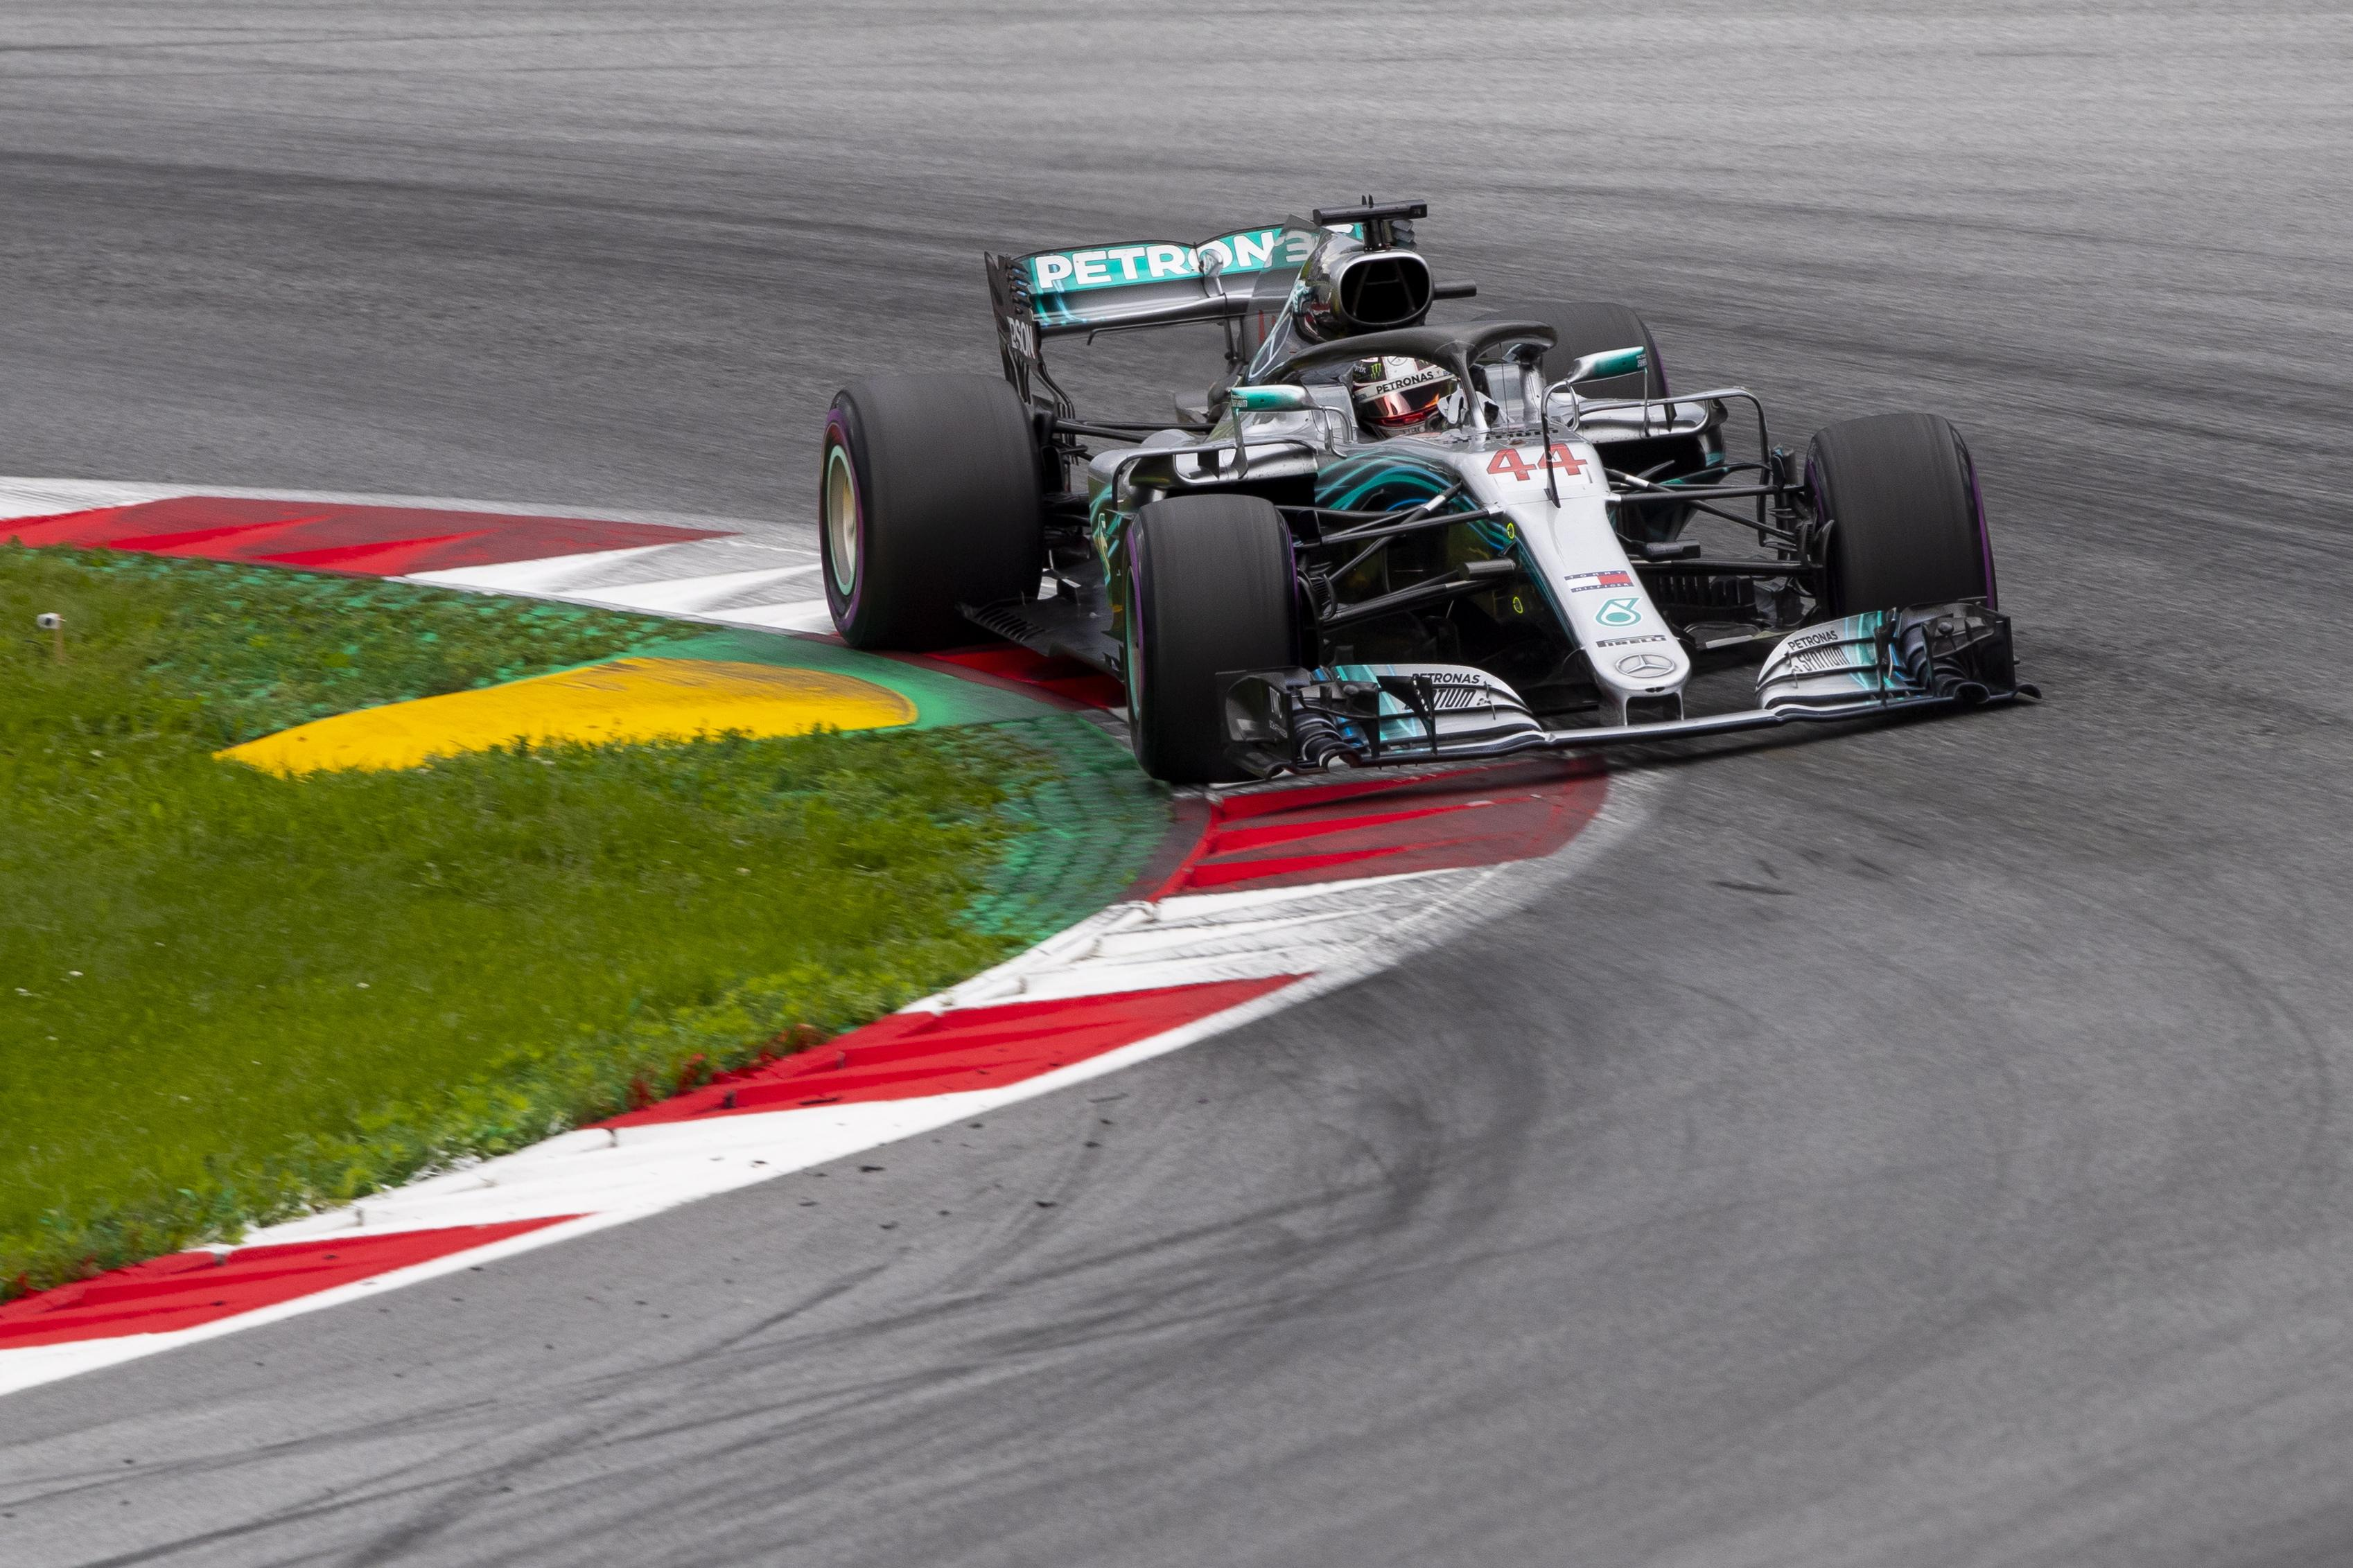 It was a poor day for Mercedes in general, as both cars failed to finish the race